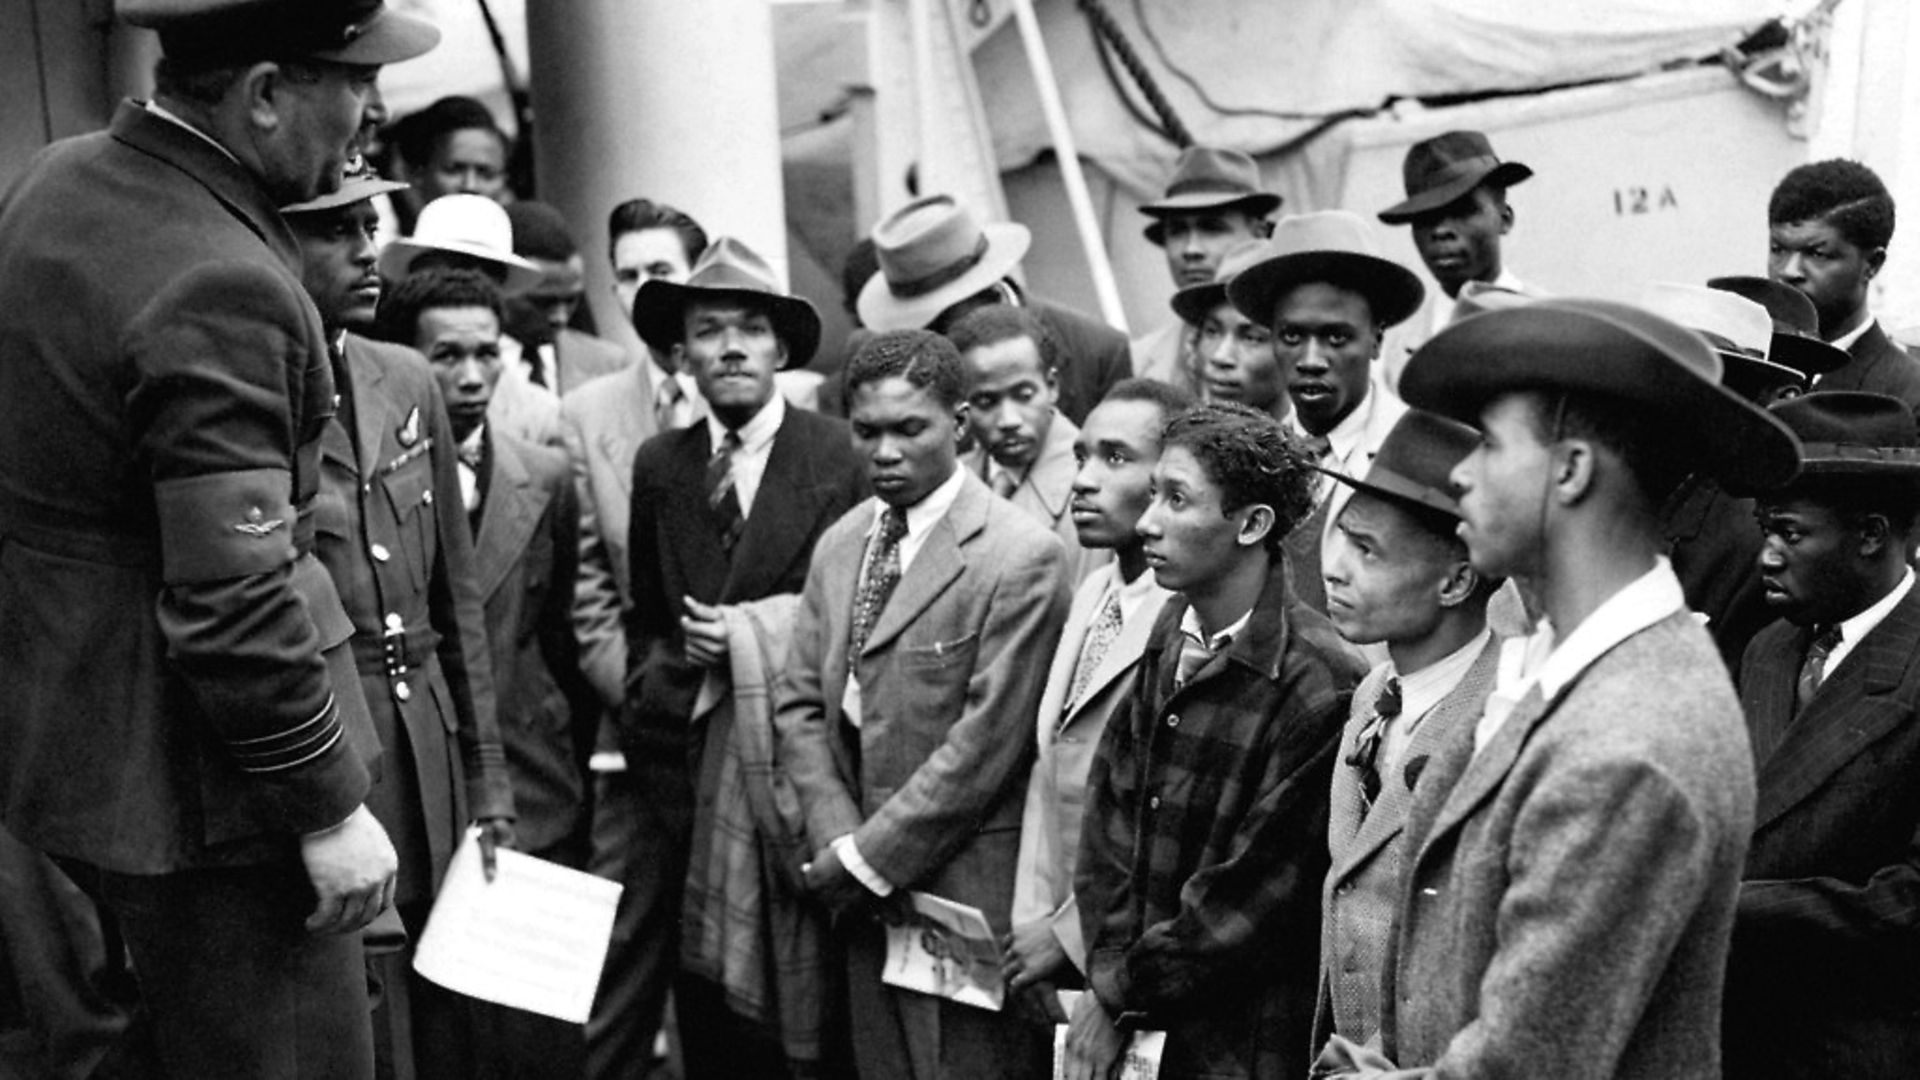 Jamaican immigrants welcomed by RAF officials from the Colonial Office after the ex-troopship HMT 'Empire Windrush' landed them at Tilbury. Photo: PA - Credit: PA Archive/PA Images